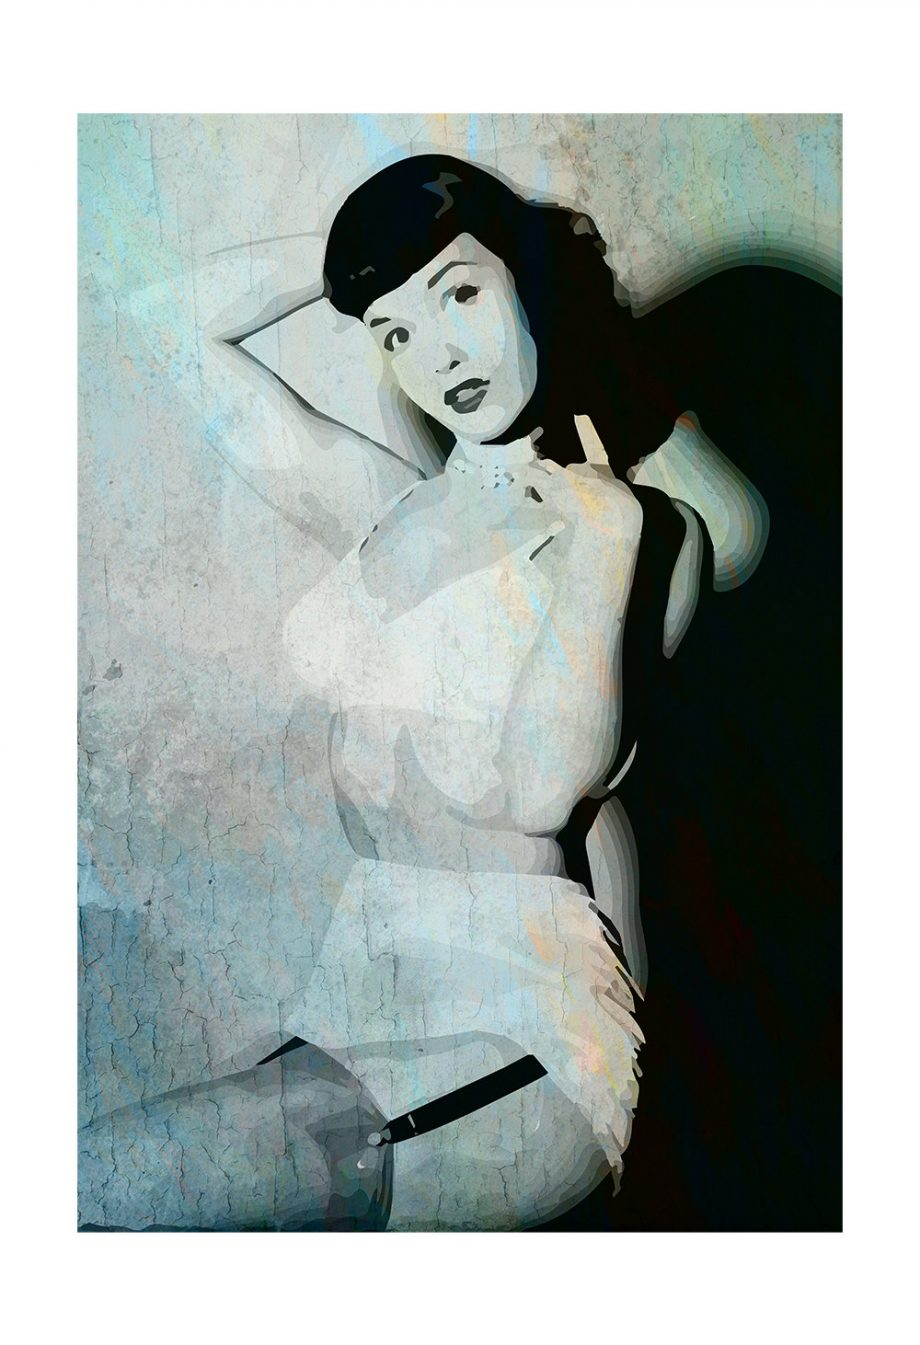 Bettie Page Retro Pin up Illustration Art Print Vintage Giclee on Satin or Cotton Canvas Large Poster Wall Decor